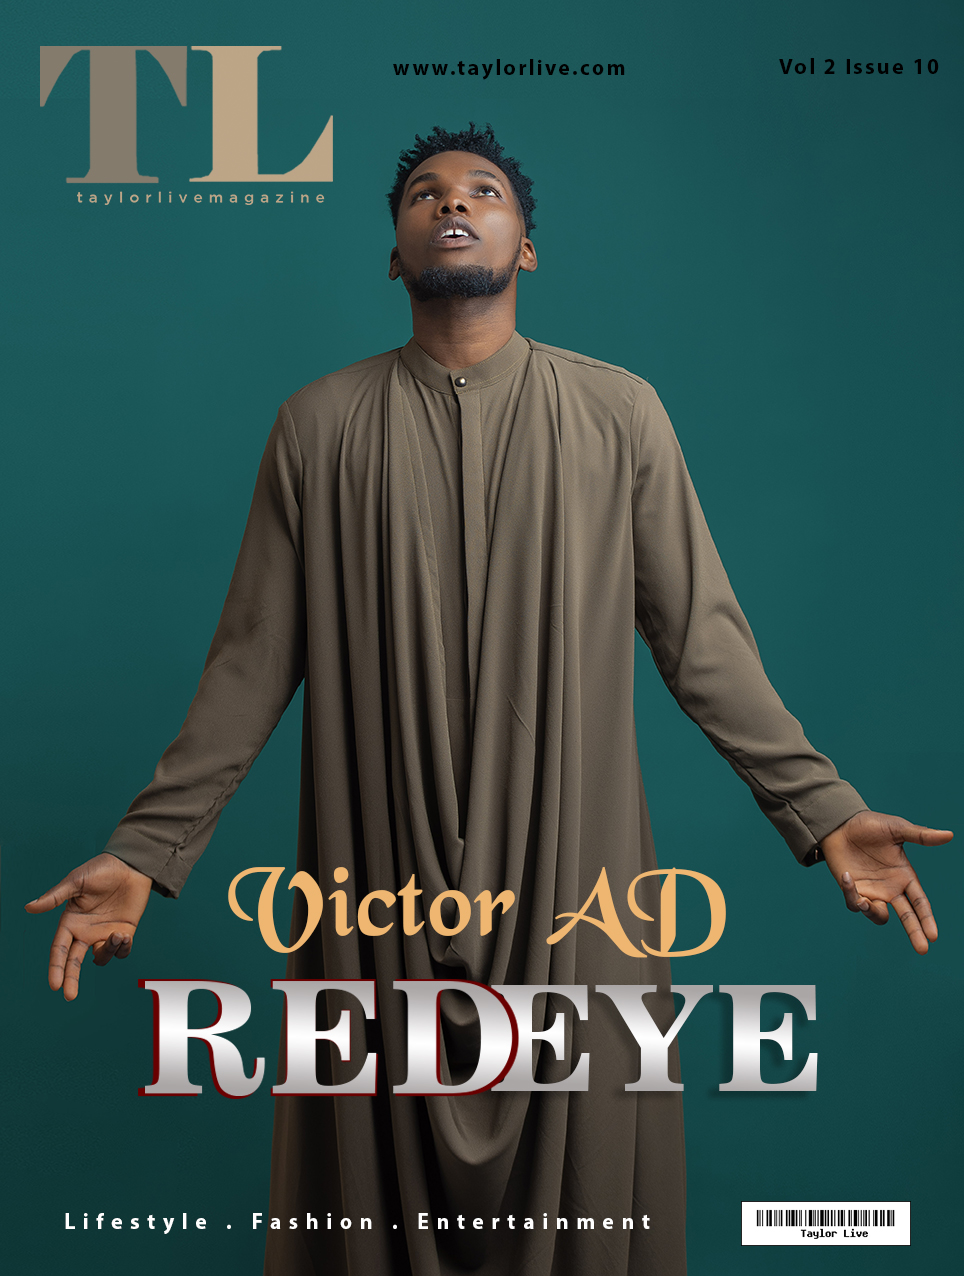 Red Eye - Victor AD